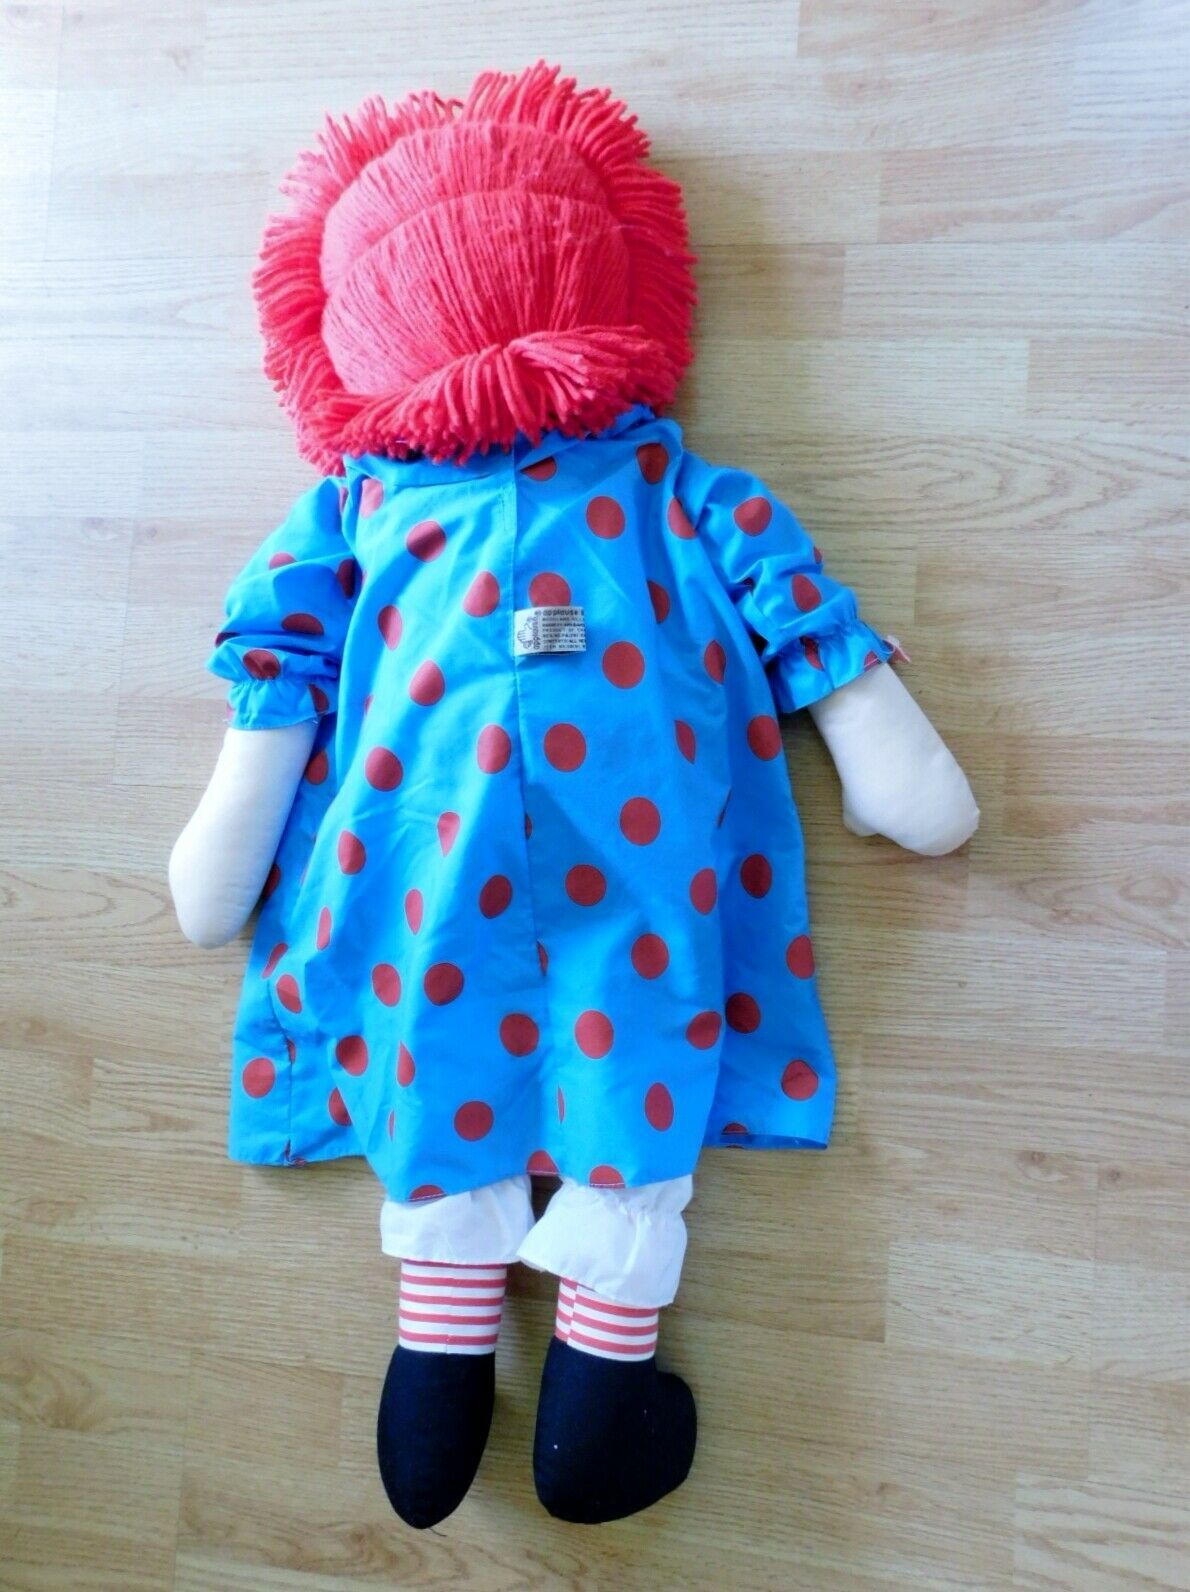 "(2) 36"" RAGGEDY ANN DOLLS with Hangtags Applause image 11"